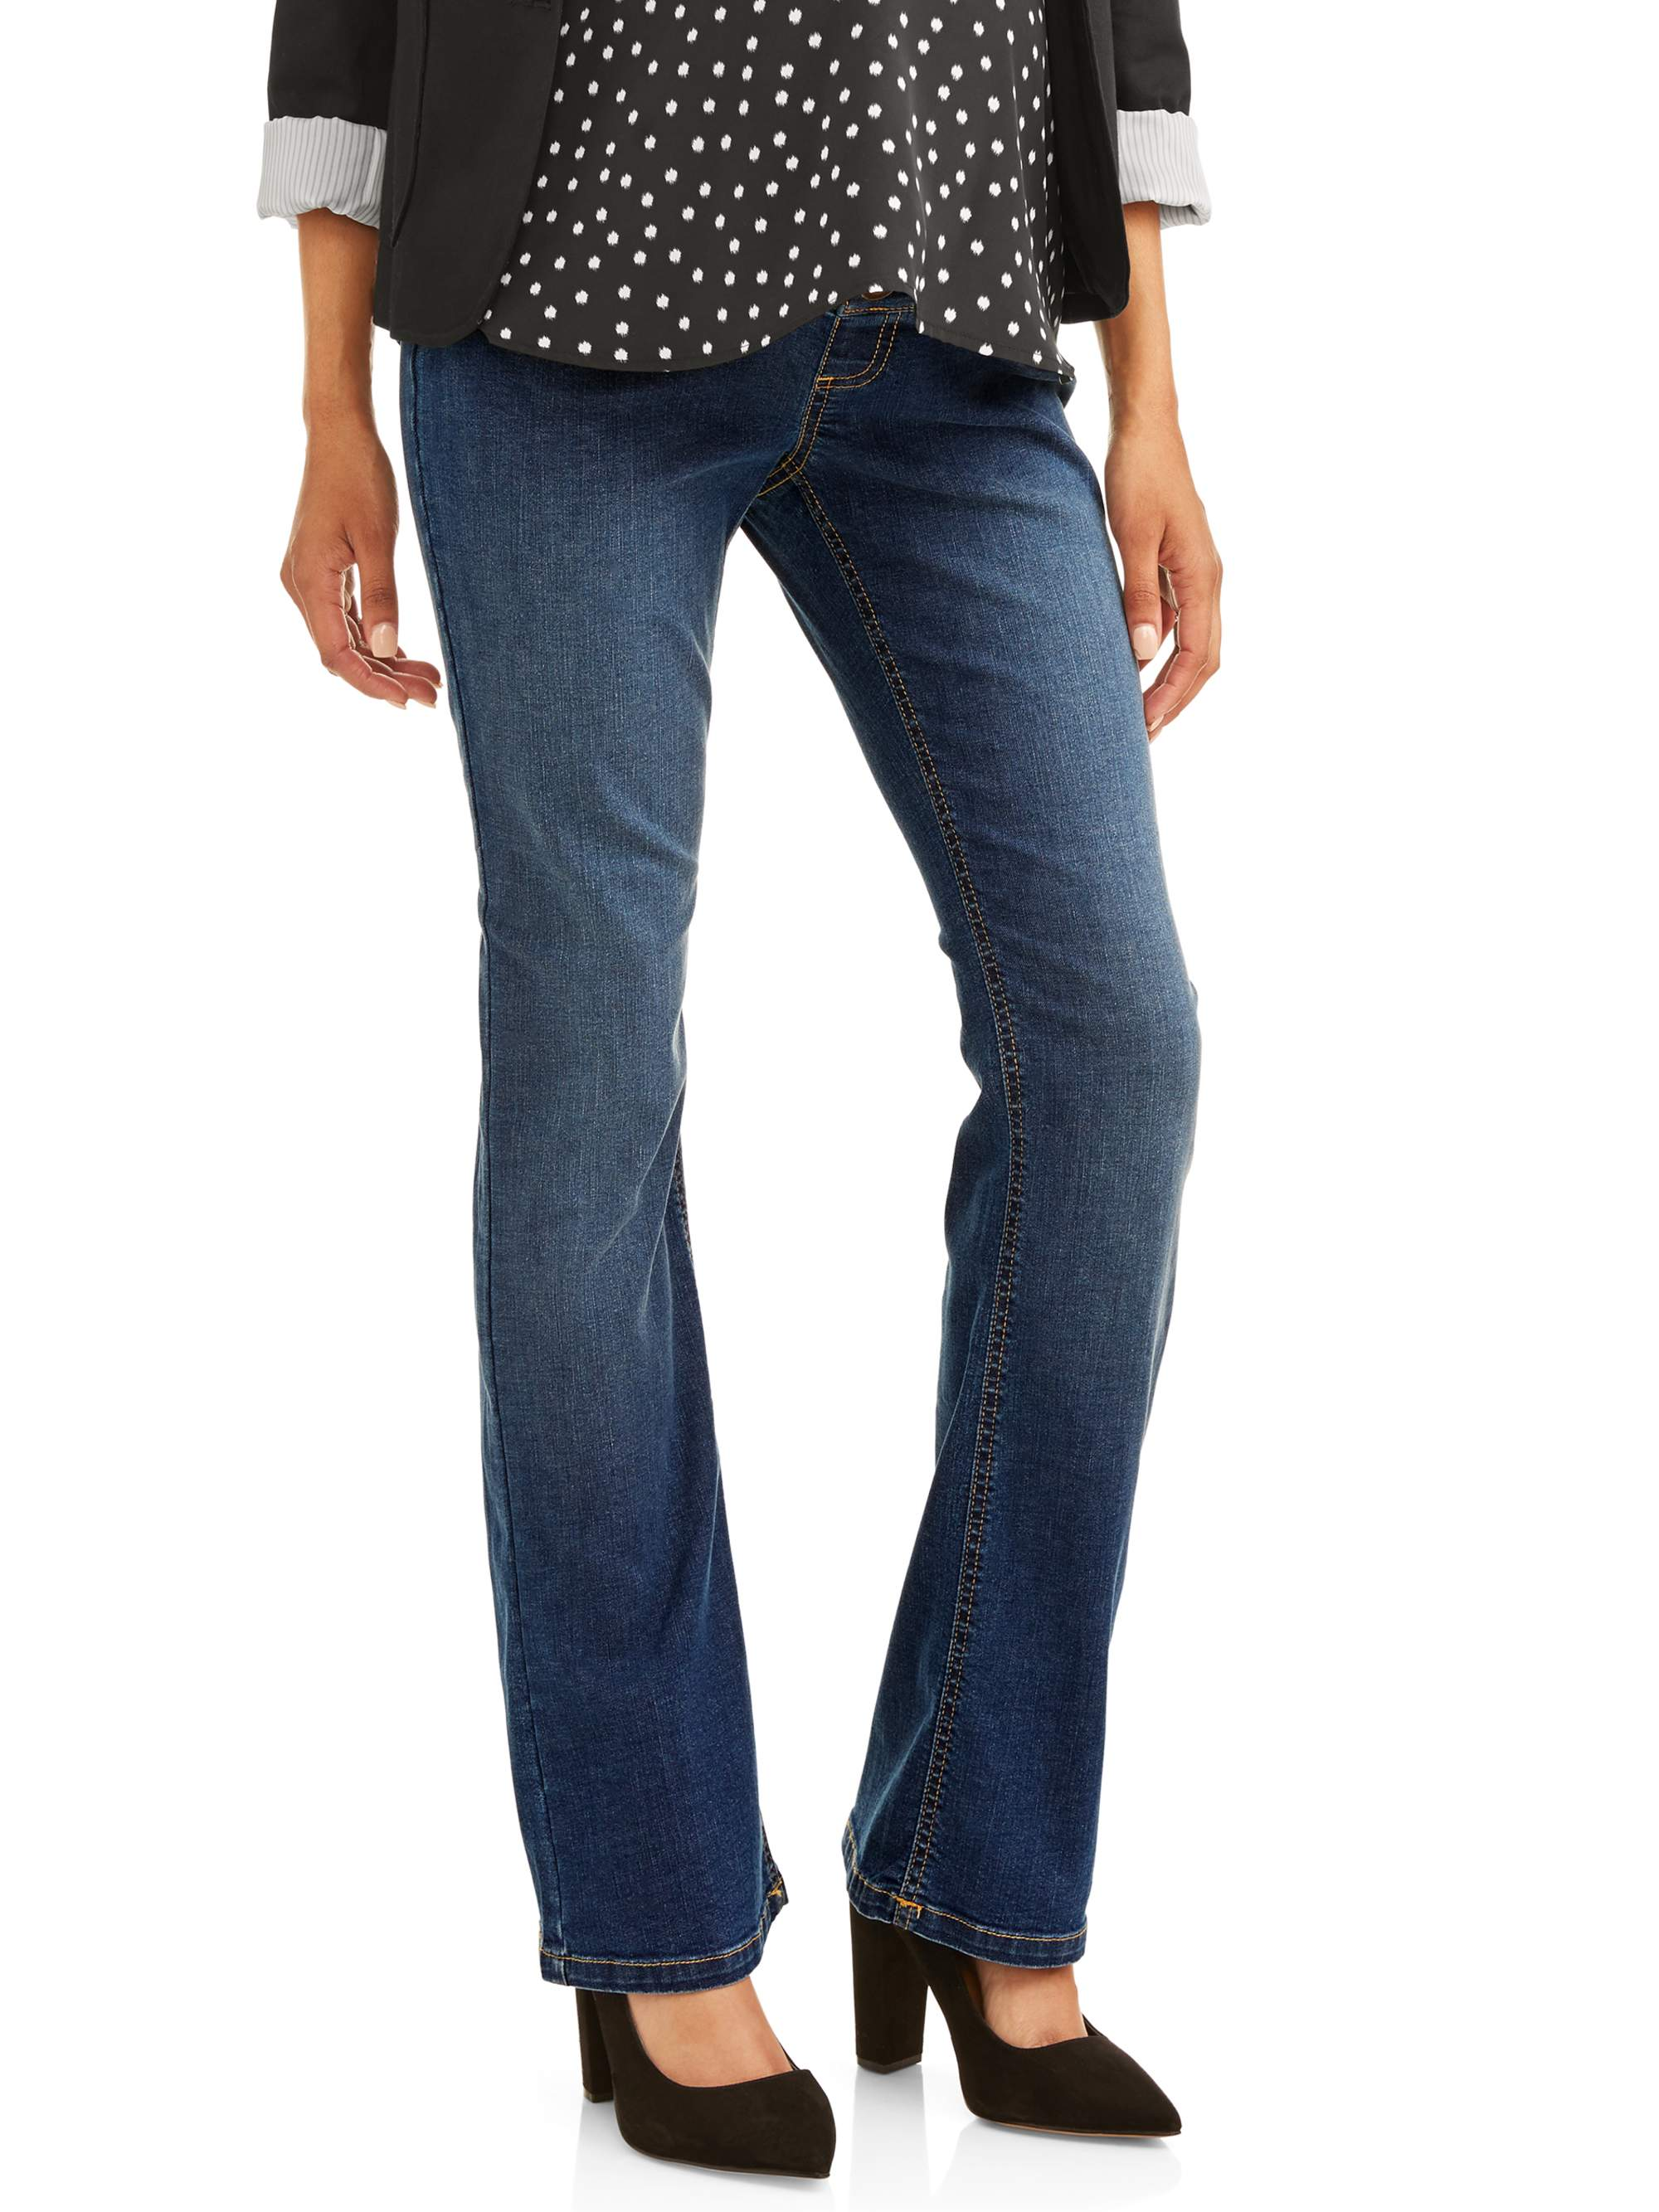 Full Panel 5 Pocket Bootcut Maternity Jeans